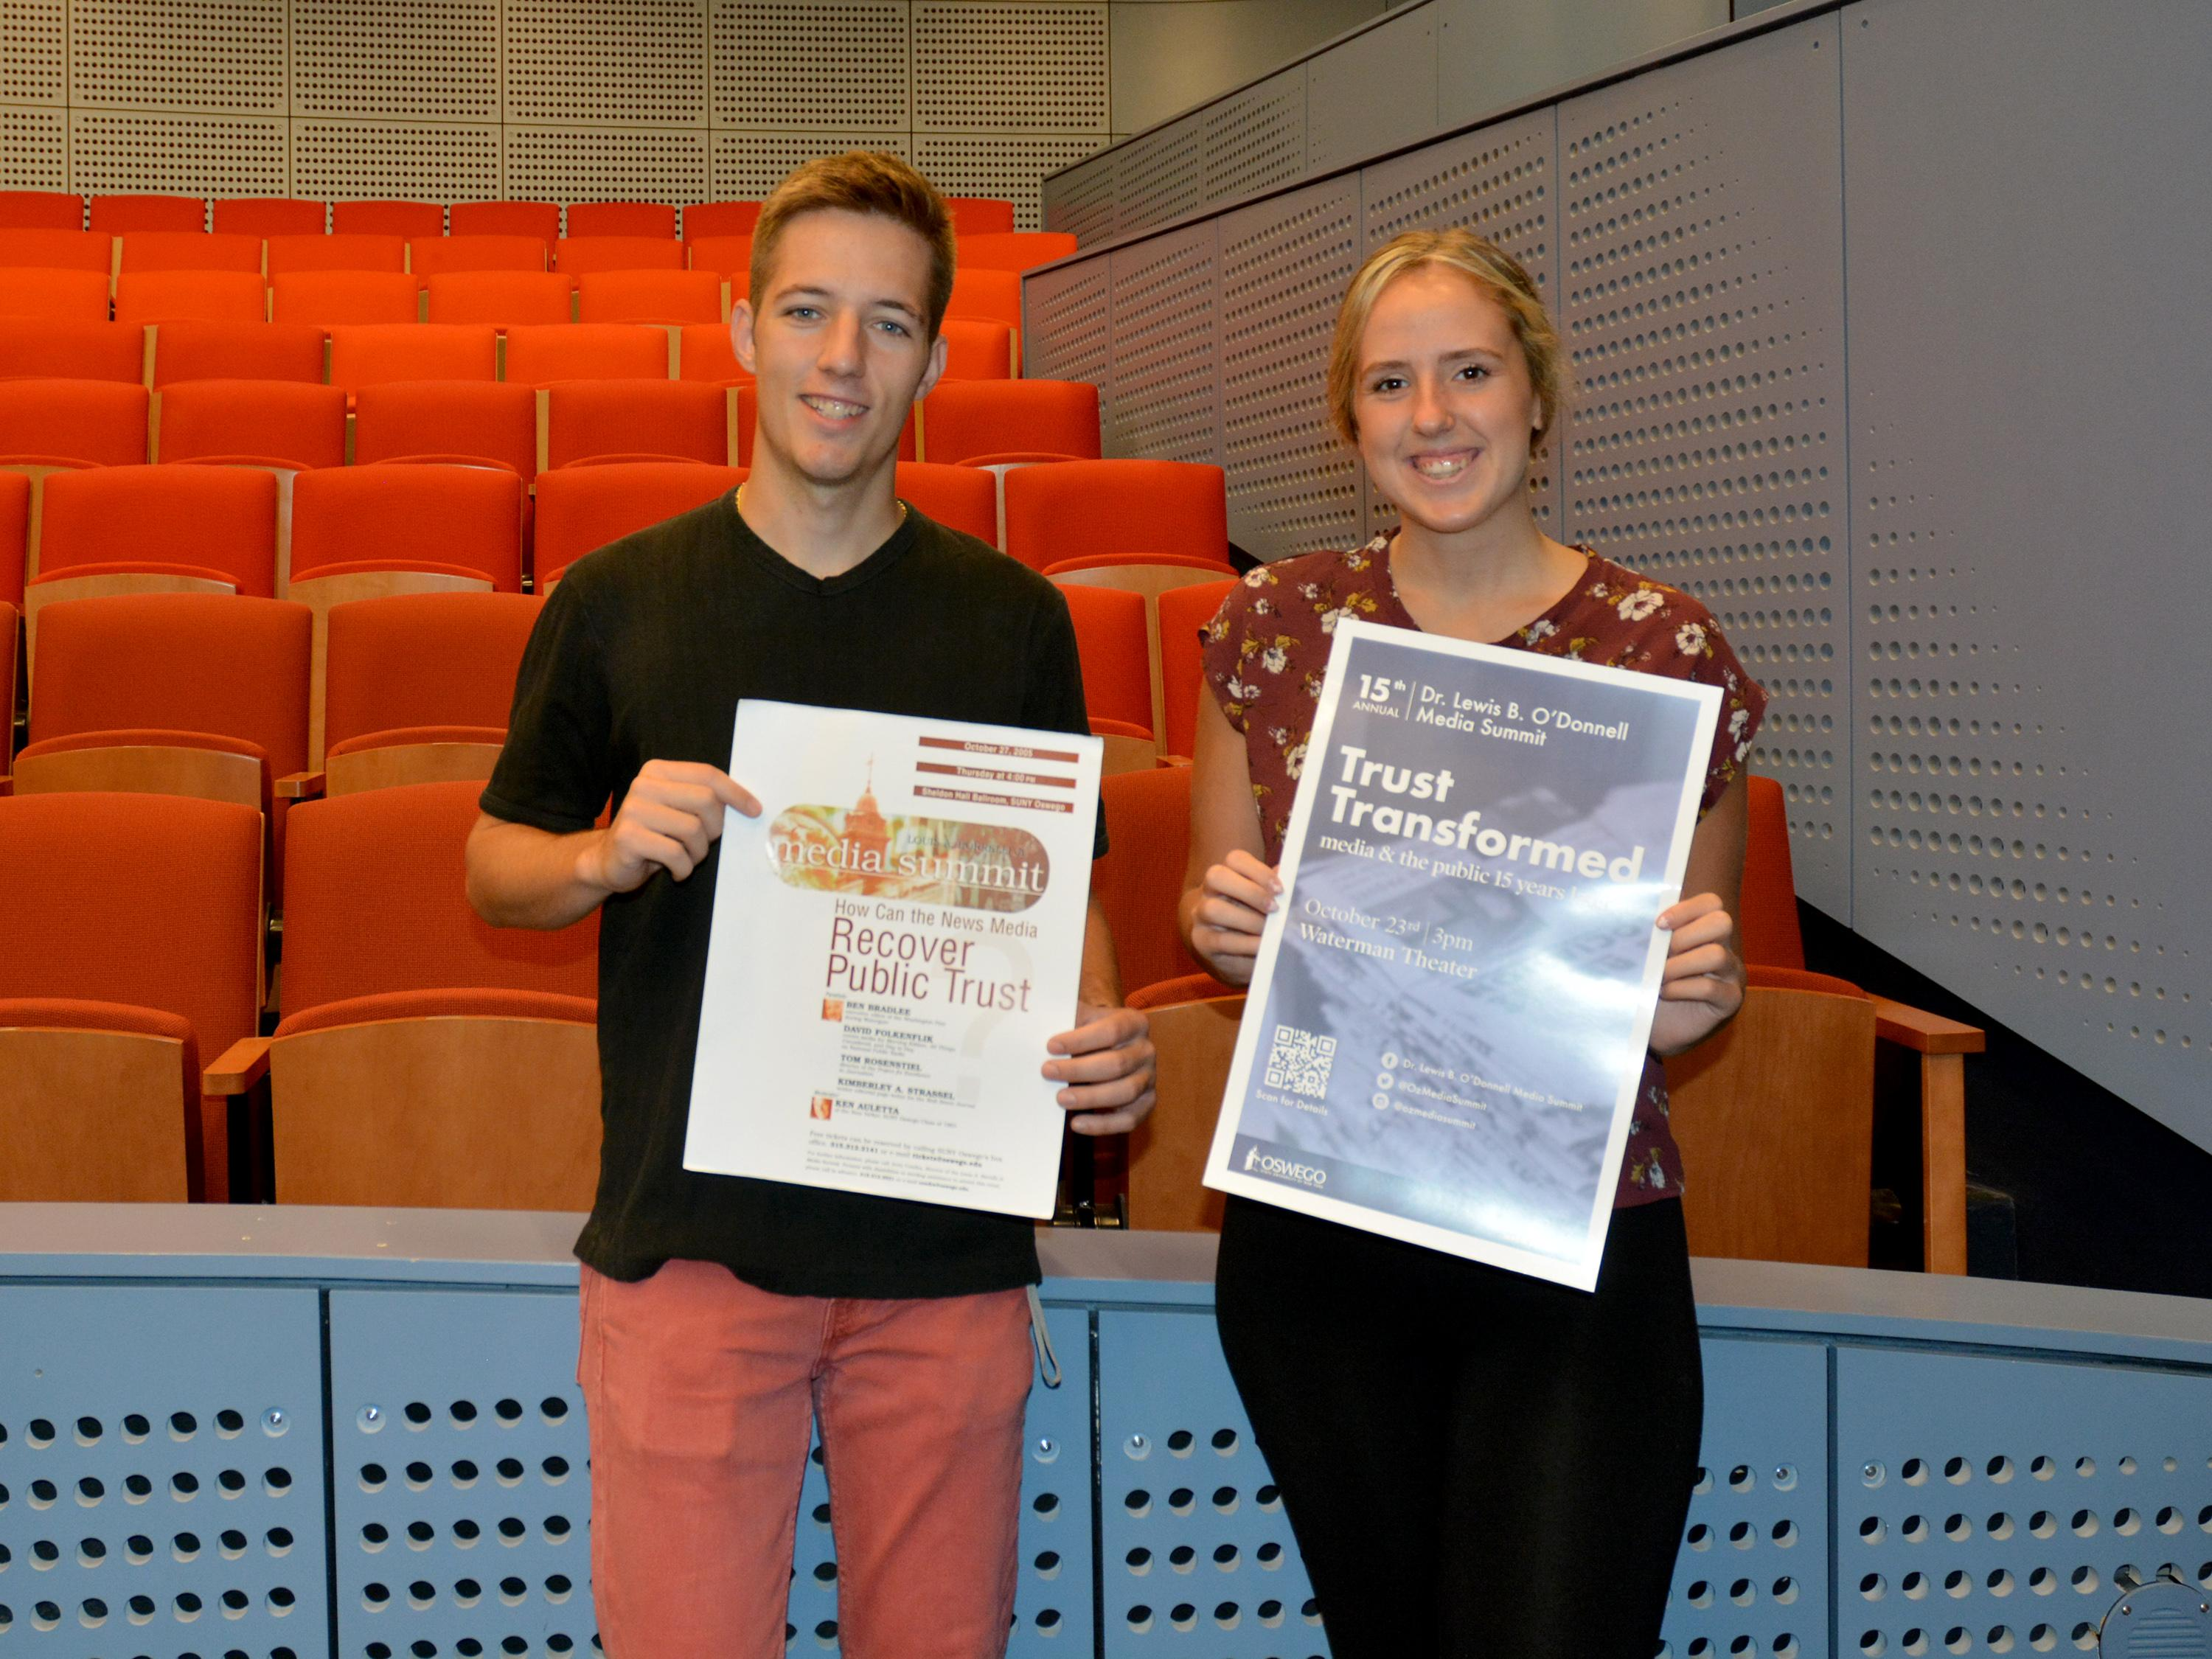 Josh Holfoth and Tori Kammer holding posters from the first media summit in 2005 and the 2019 edition